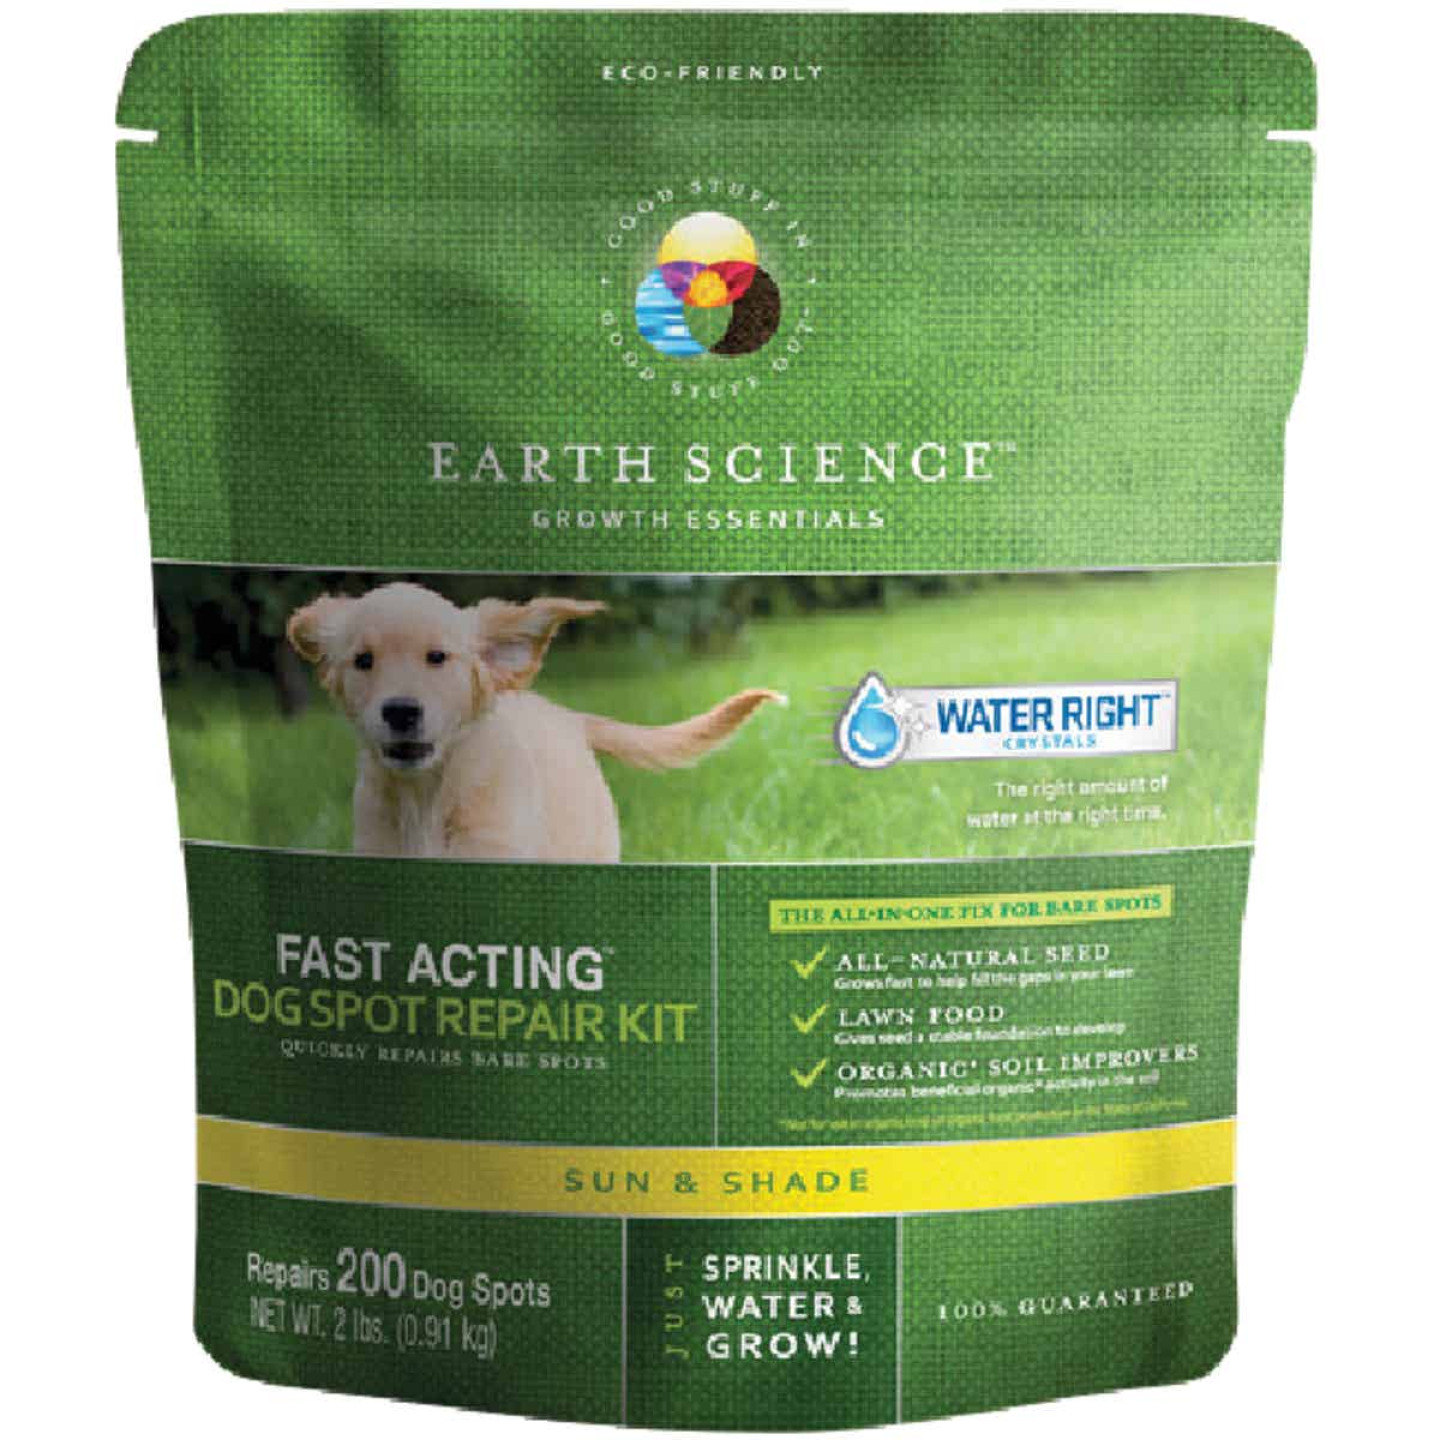 Earth Science 2Lb. Covers Up to 300 Dog Spots Sun & Shade Grass Patch & Repair Image 1